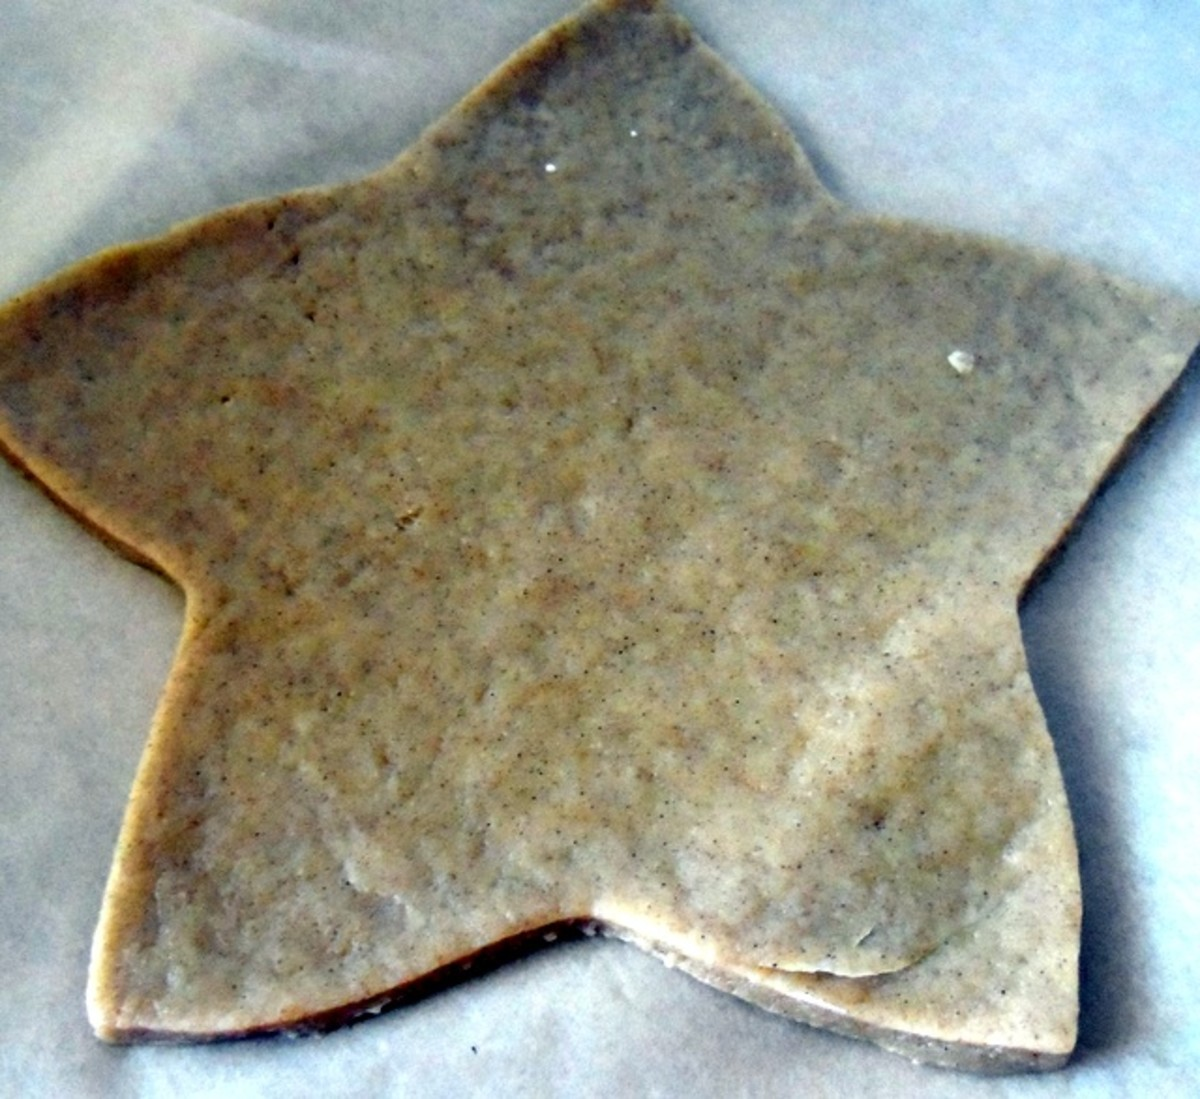 Roll out the dough and cut out the star shapes.  Place on baking sheets lined with parchment and bake in the oven.